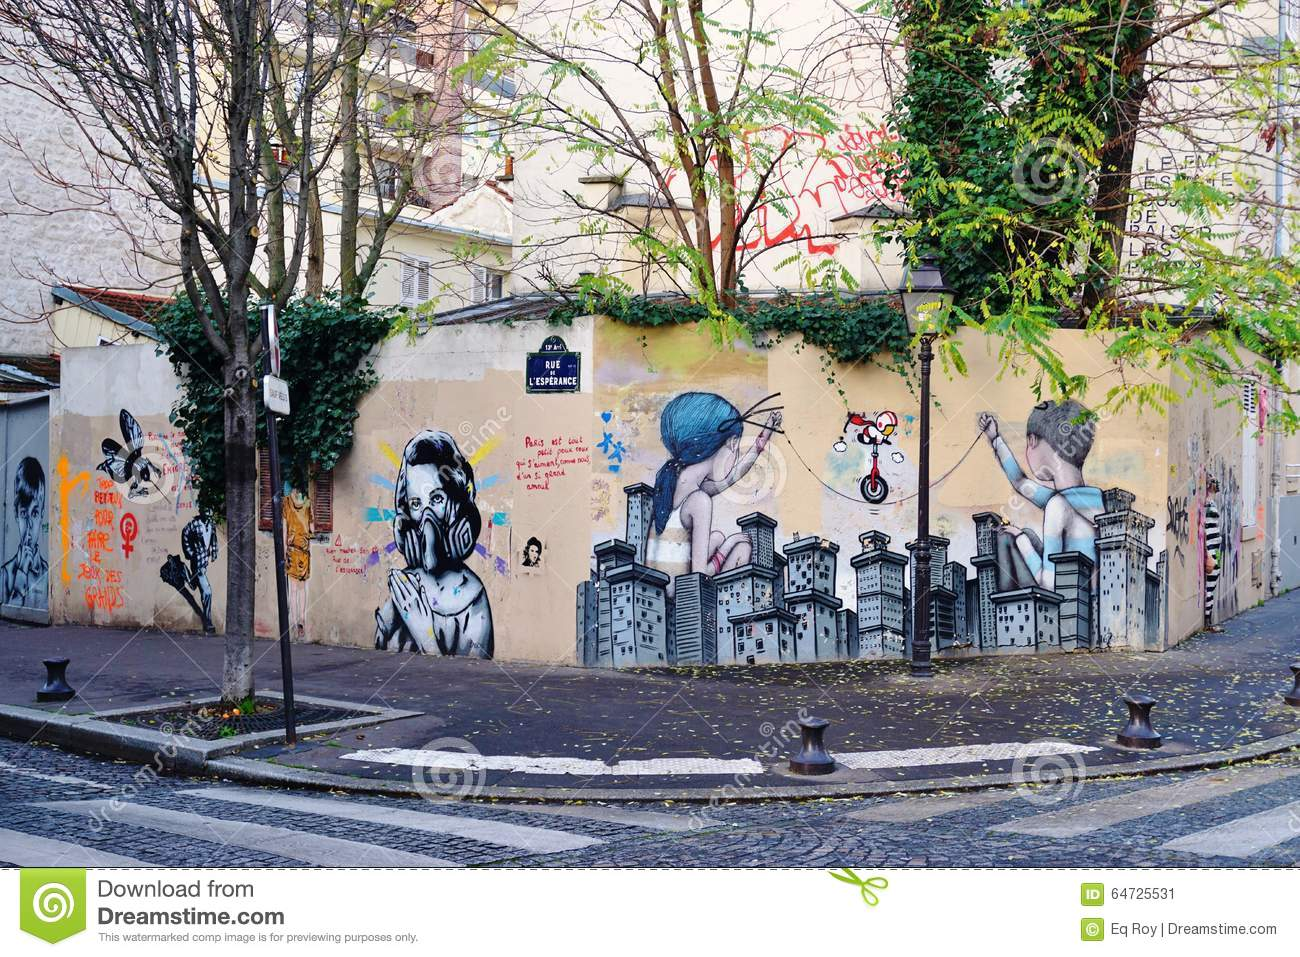 Wall mural painting by famous french street artist seth wall mural painting by famous french street artist seth globepainter in paris amipublicfo Image collections